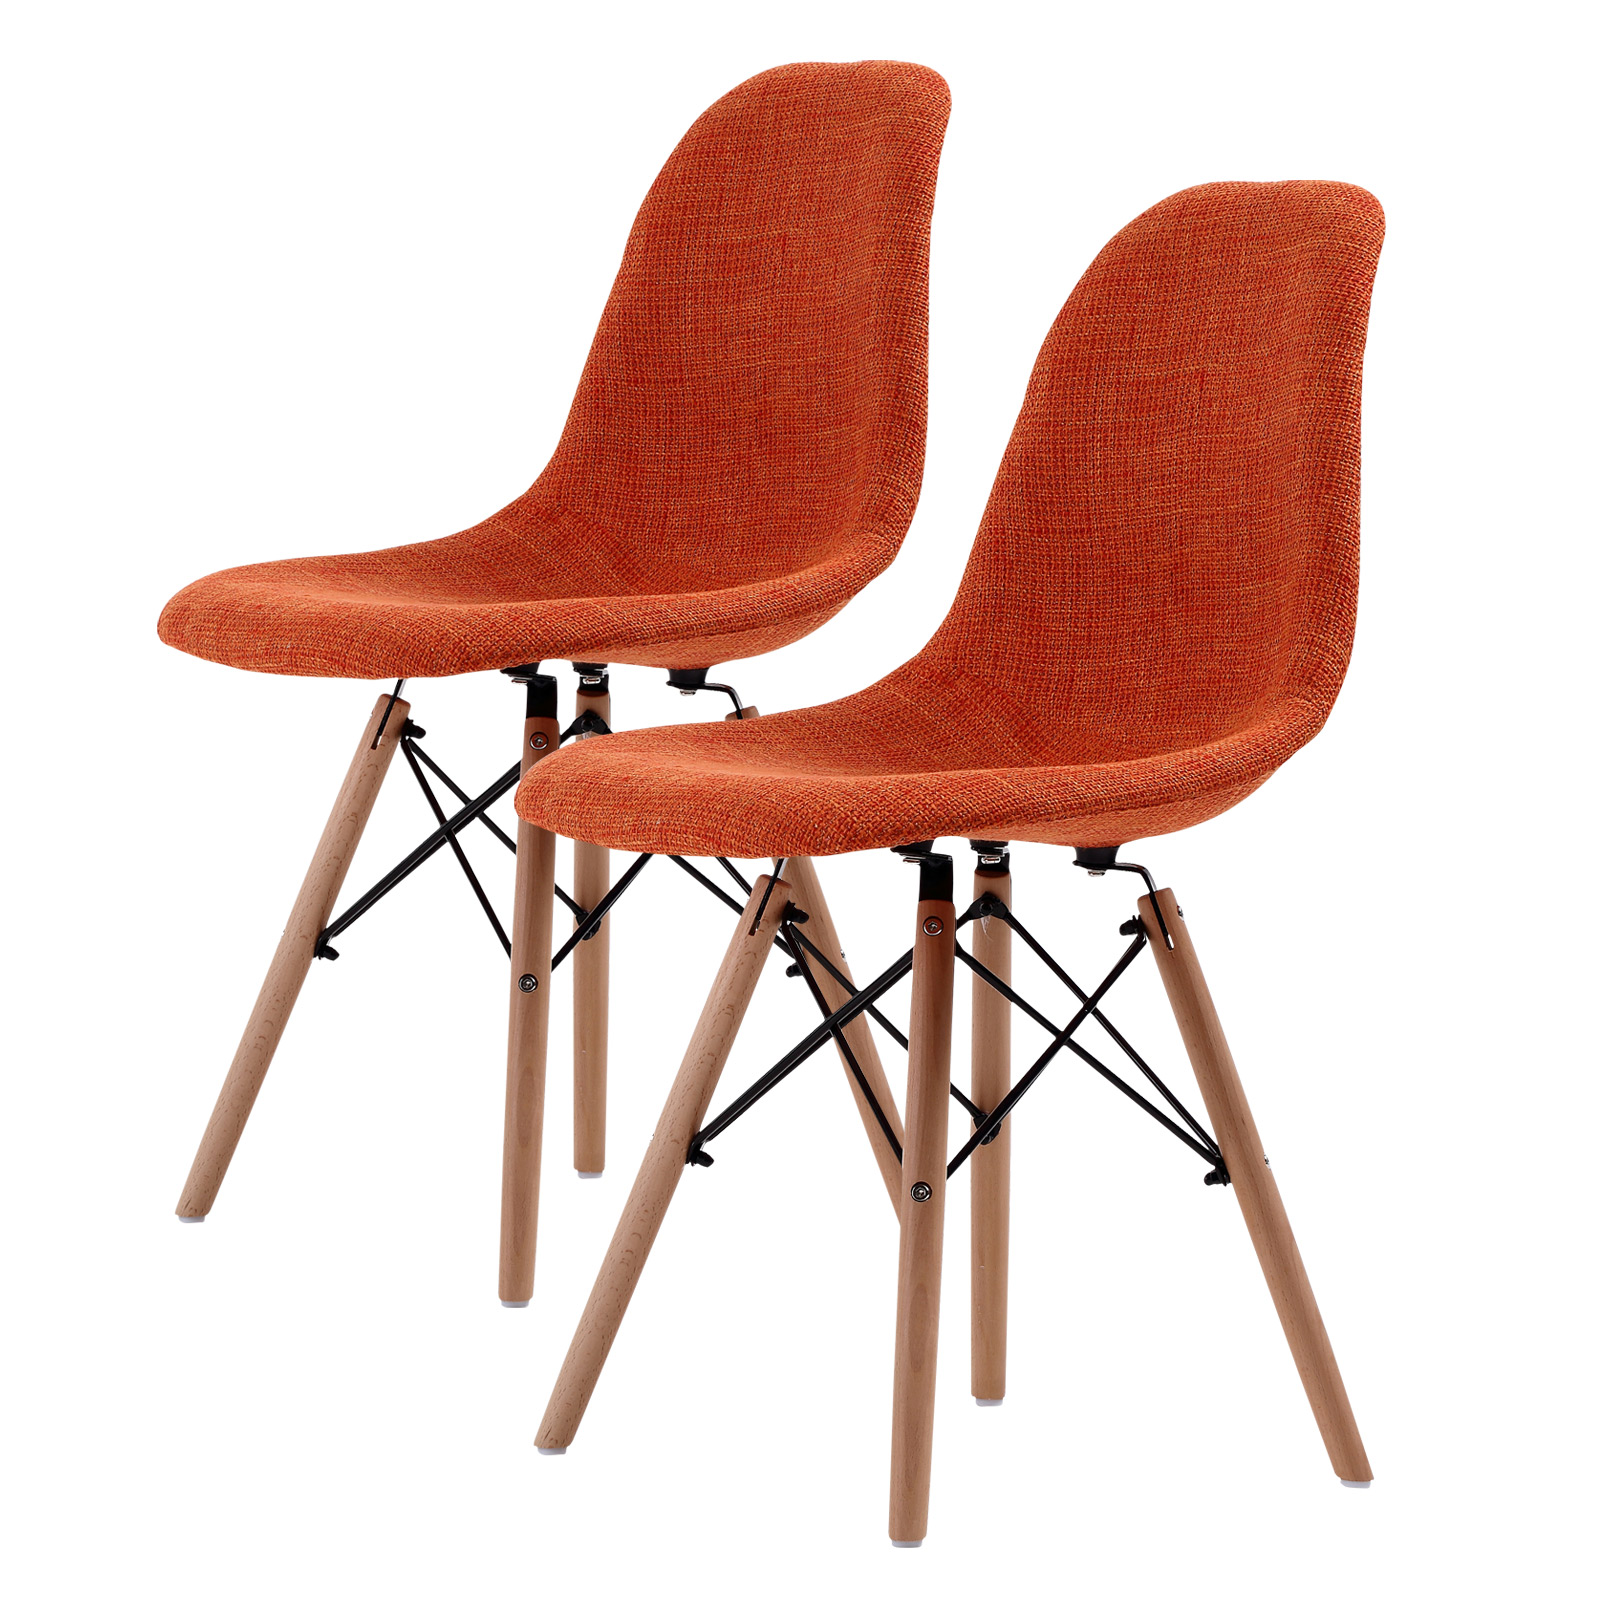 2X DSW Dining Chair Fabric - ORANGE